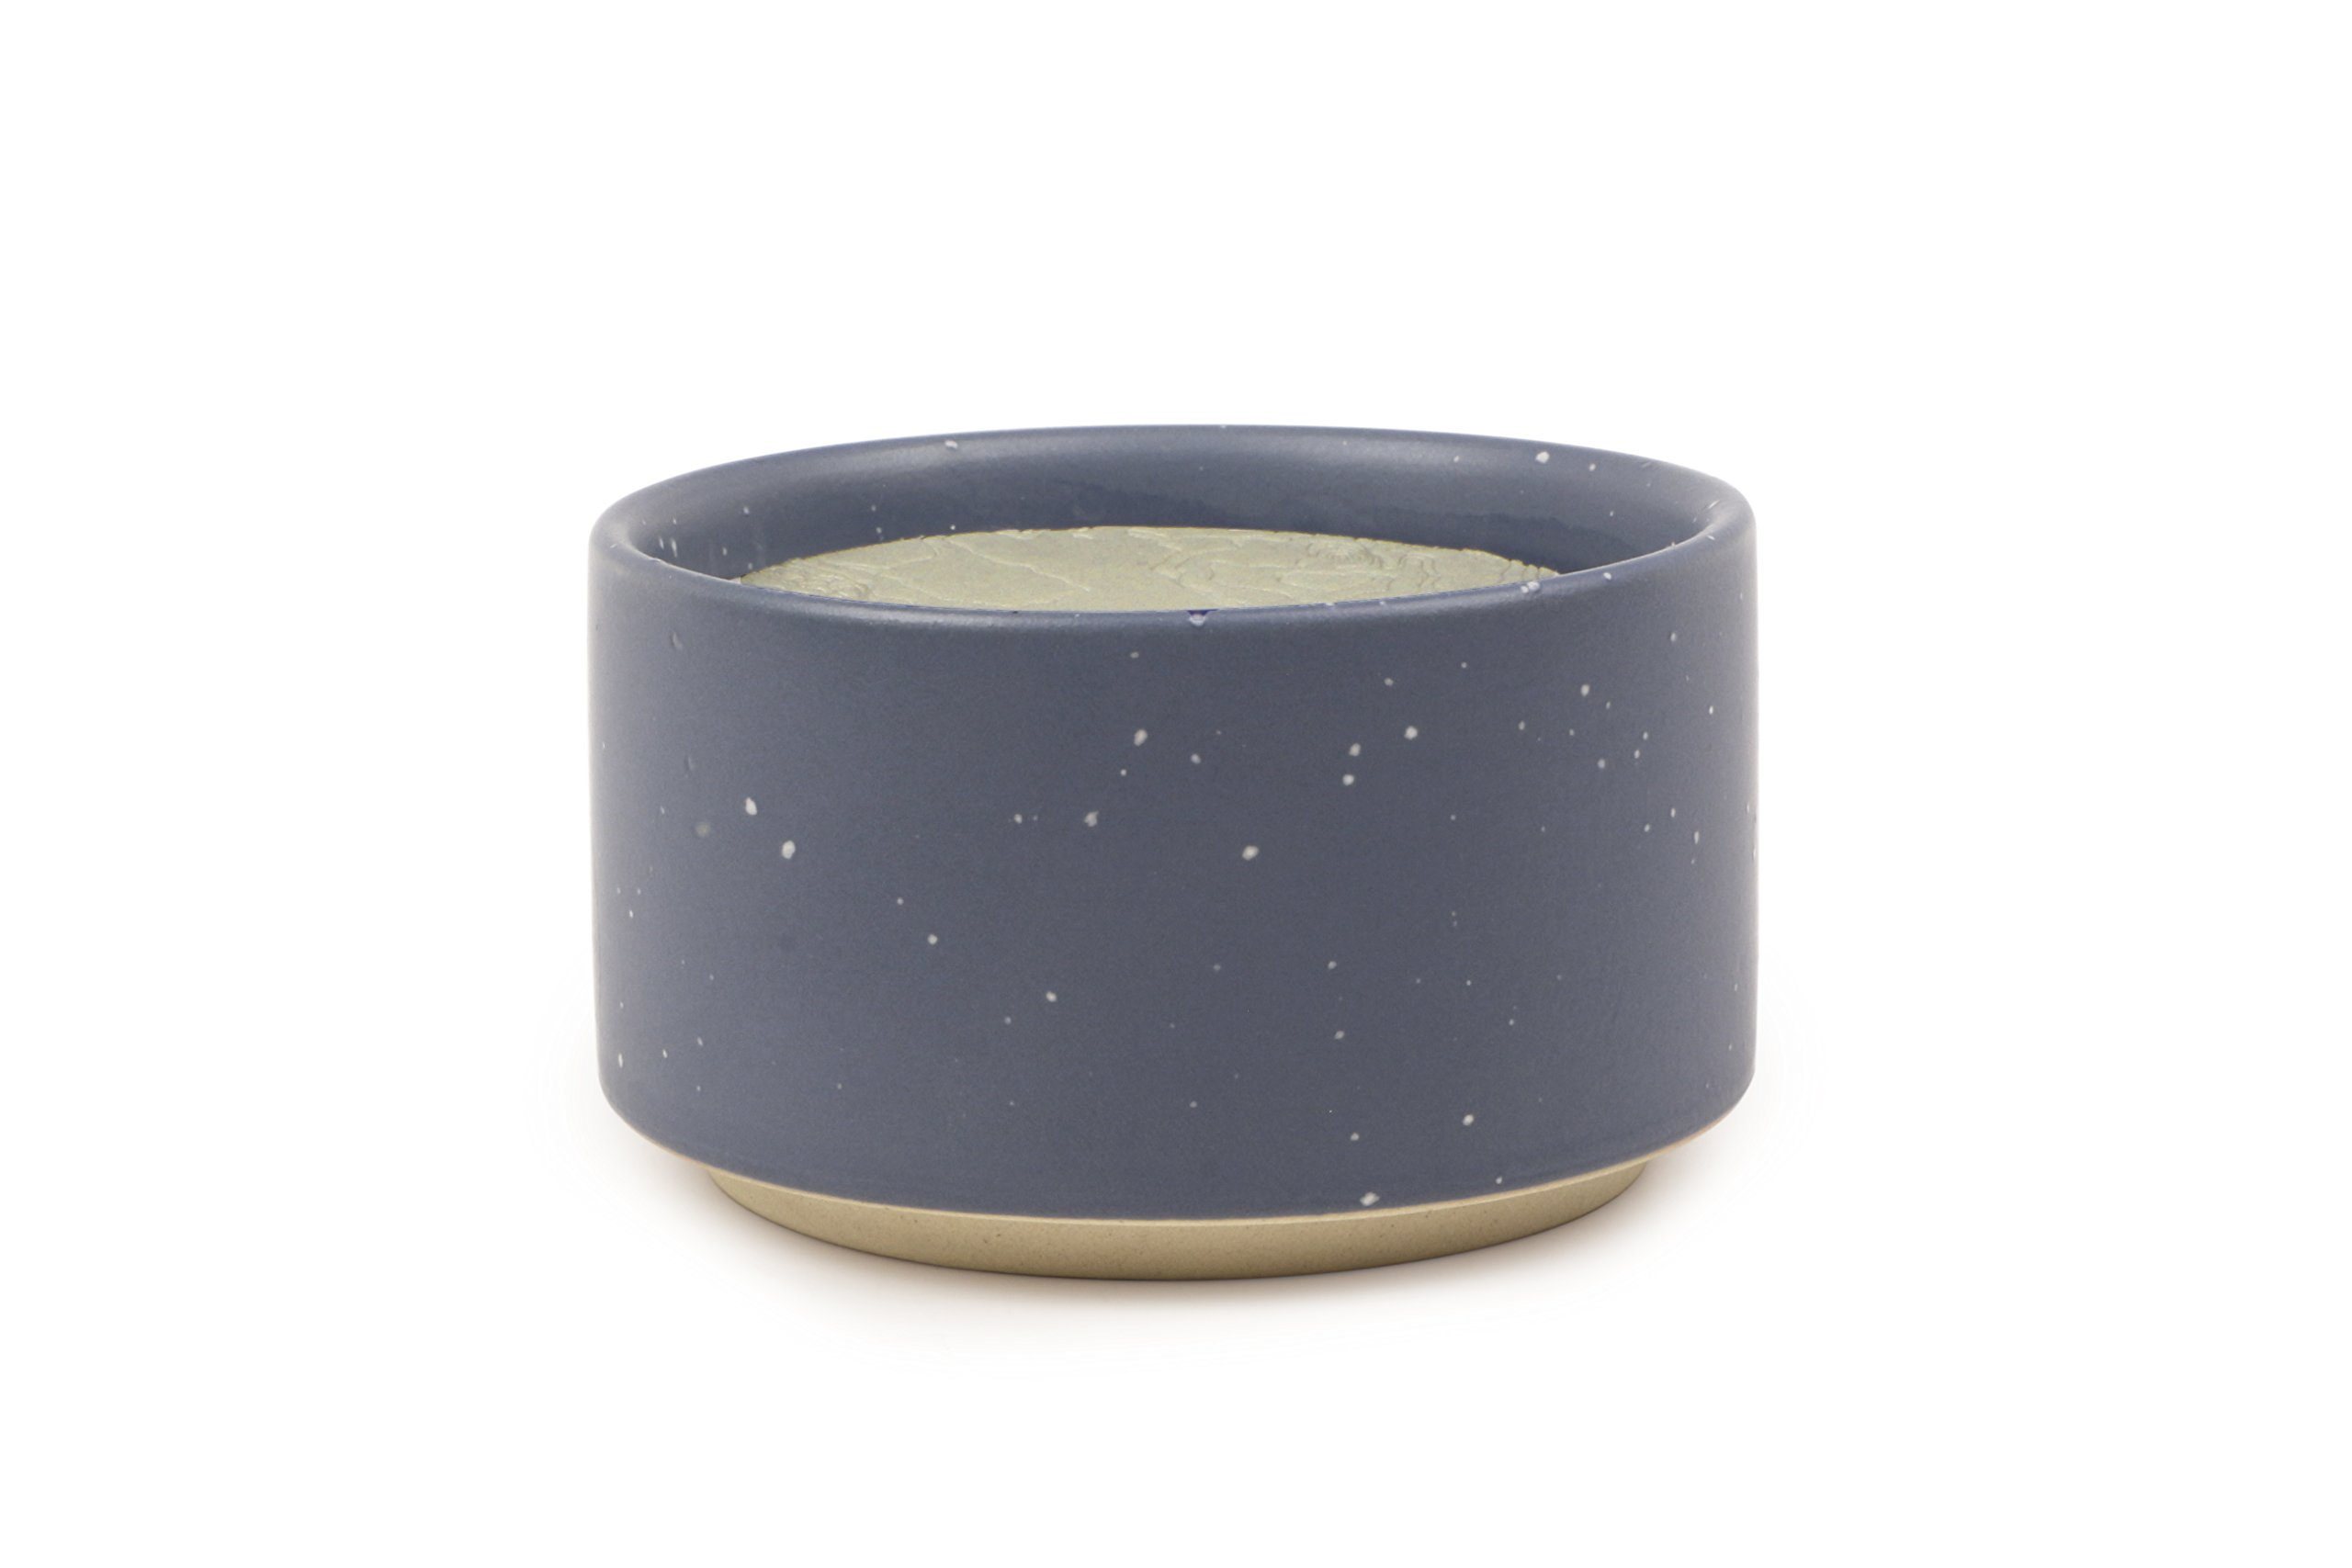 Paddywax Mesa Collection Scented Soy Wax Candle in Matte Speckled Ceramic, 3.5-Ounce, Copal & Myrrh